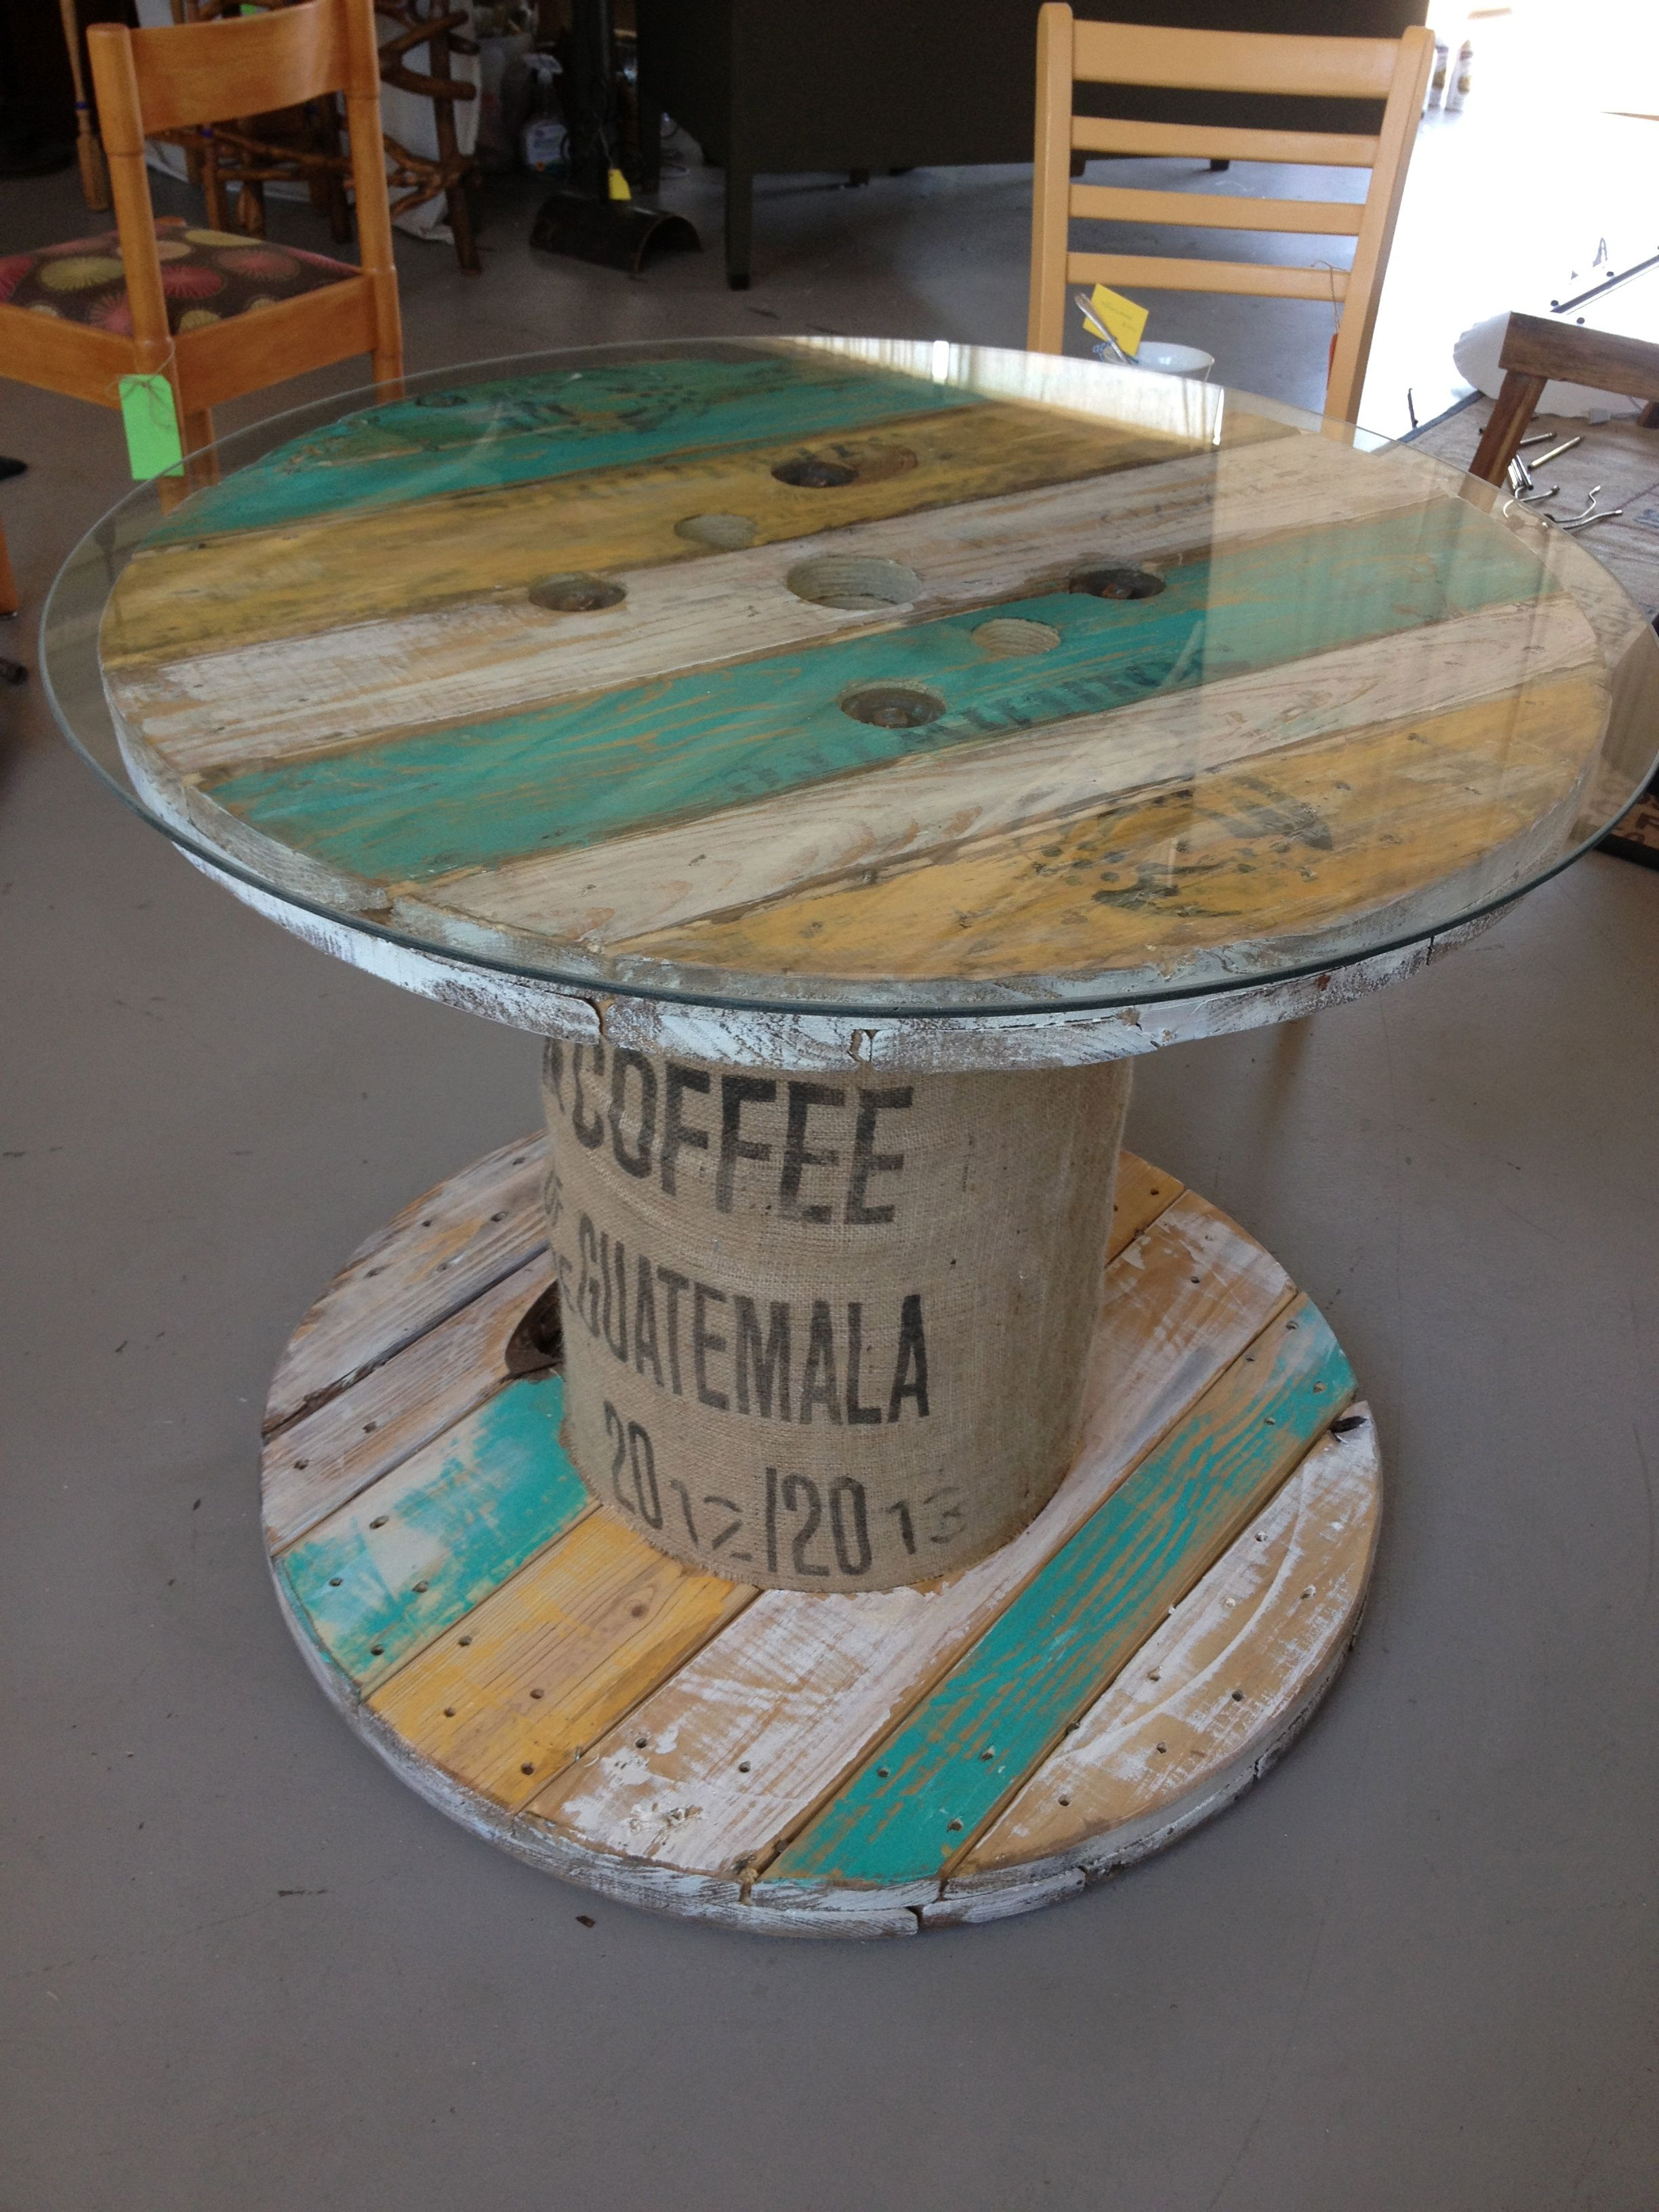 I transformed this spool into a colorful functional table for Wooden cable reel ideas